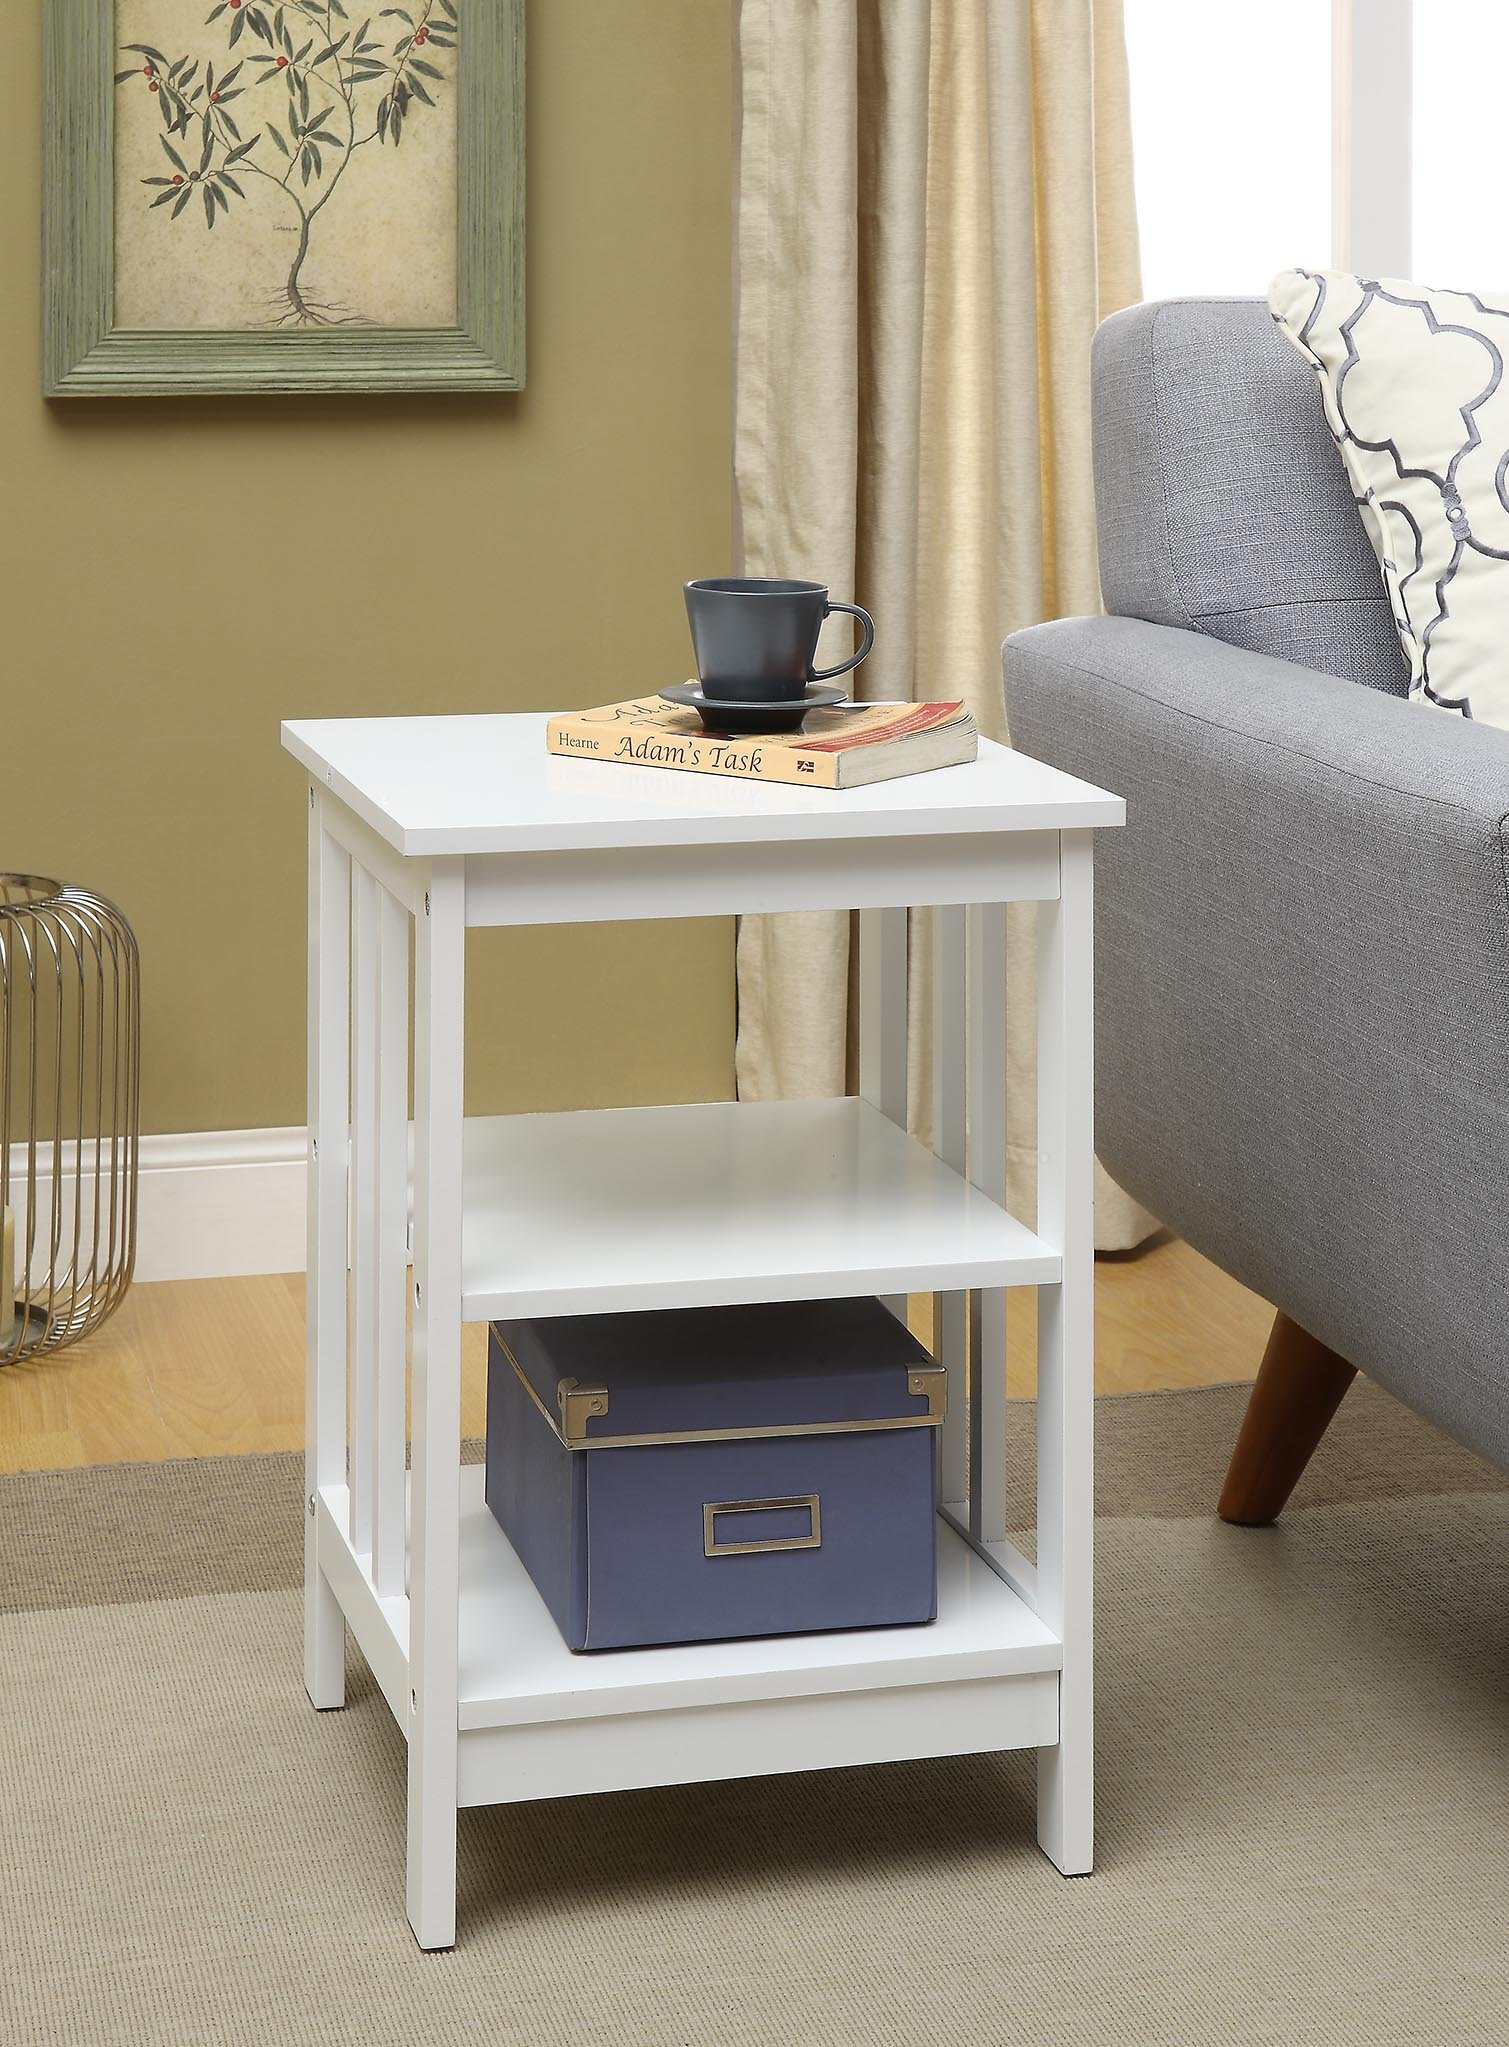 White Finish Wooden Chair Side End Table with 3-tier Shelf by eHomeProducts